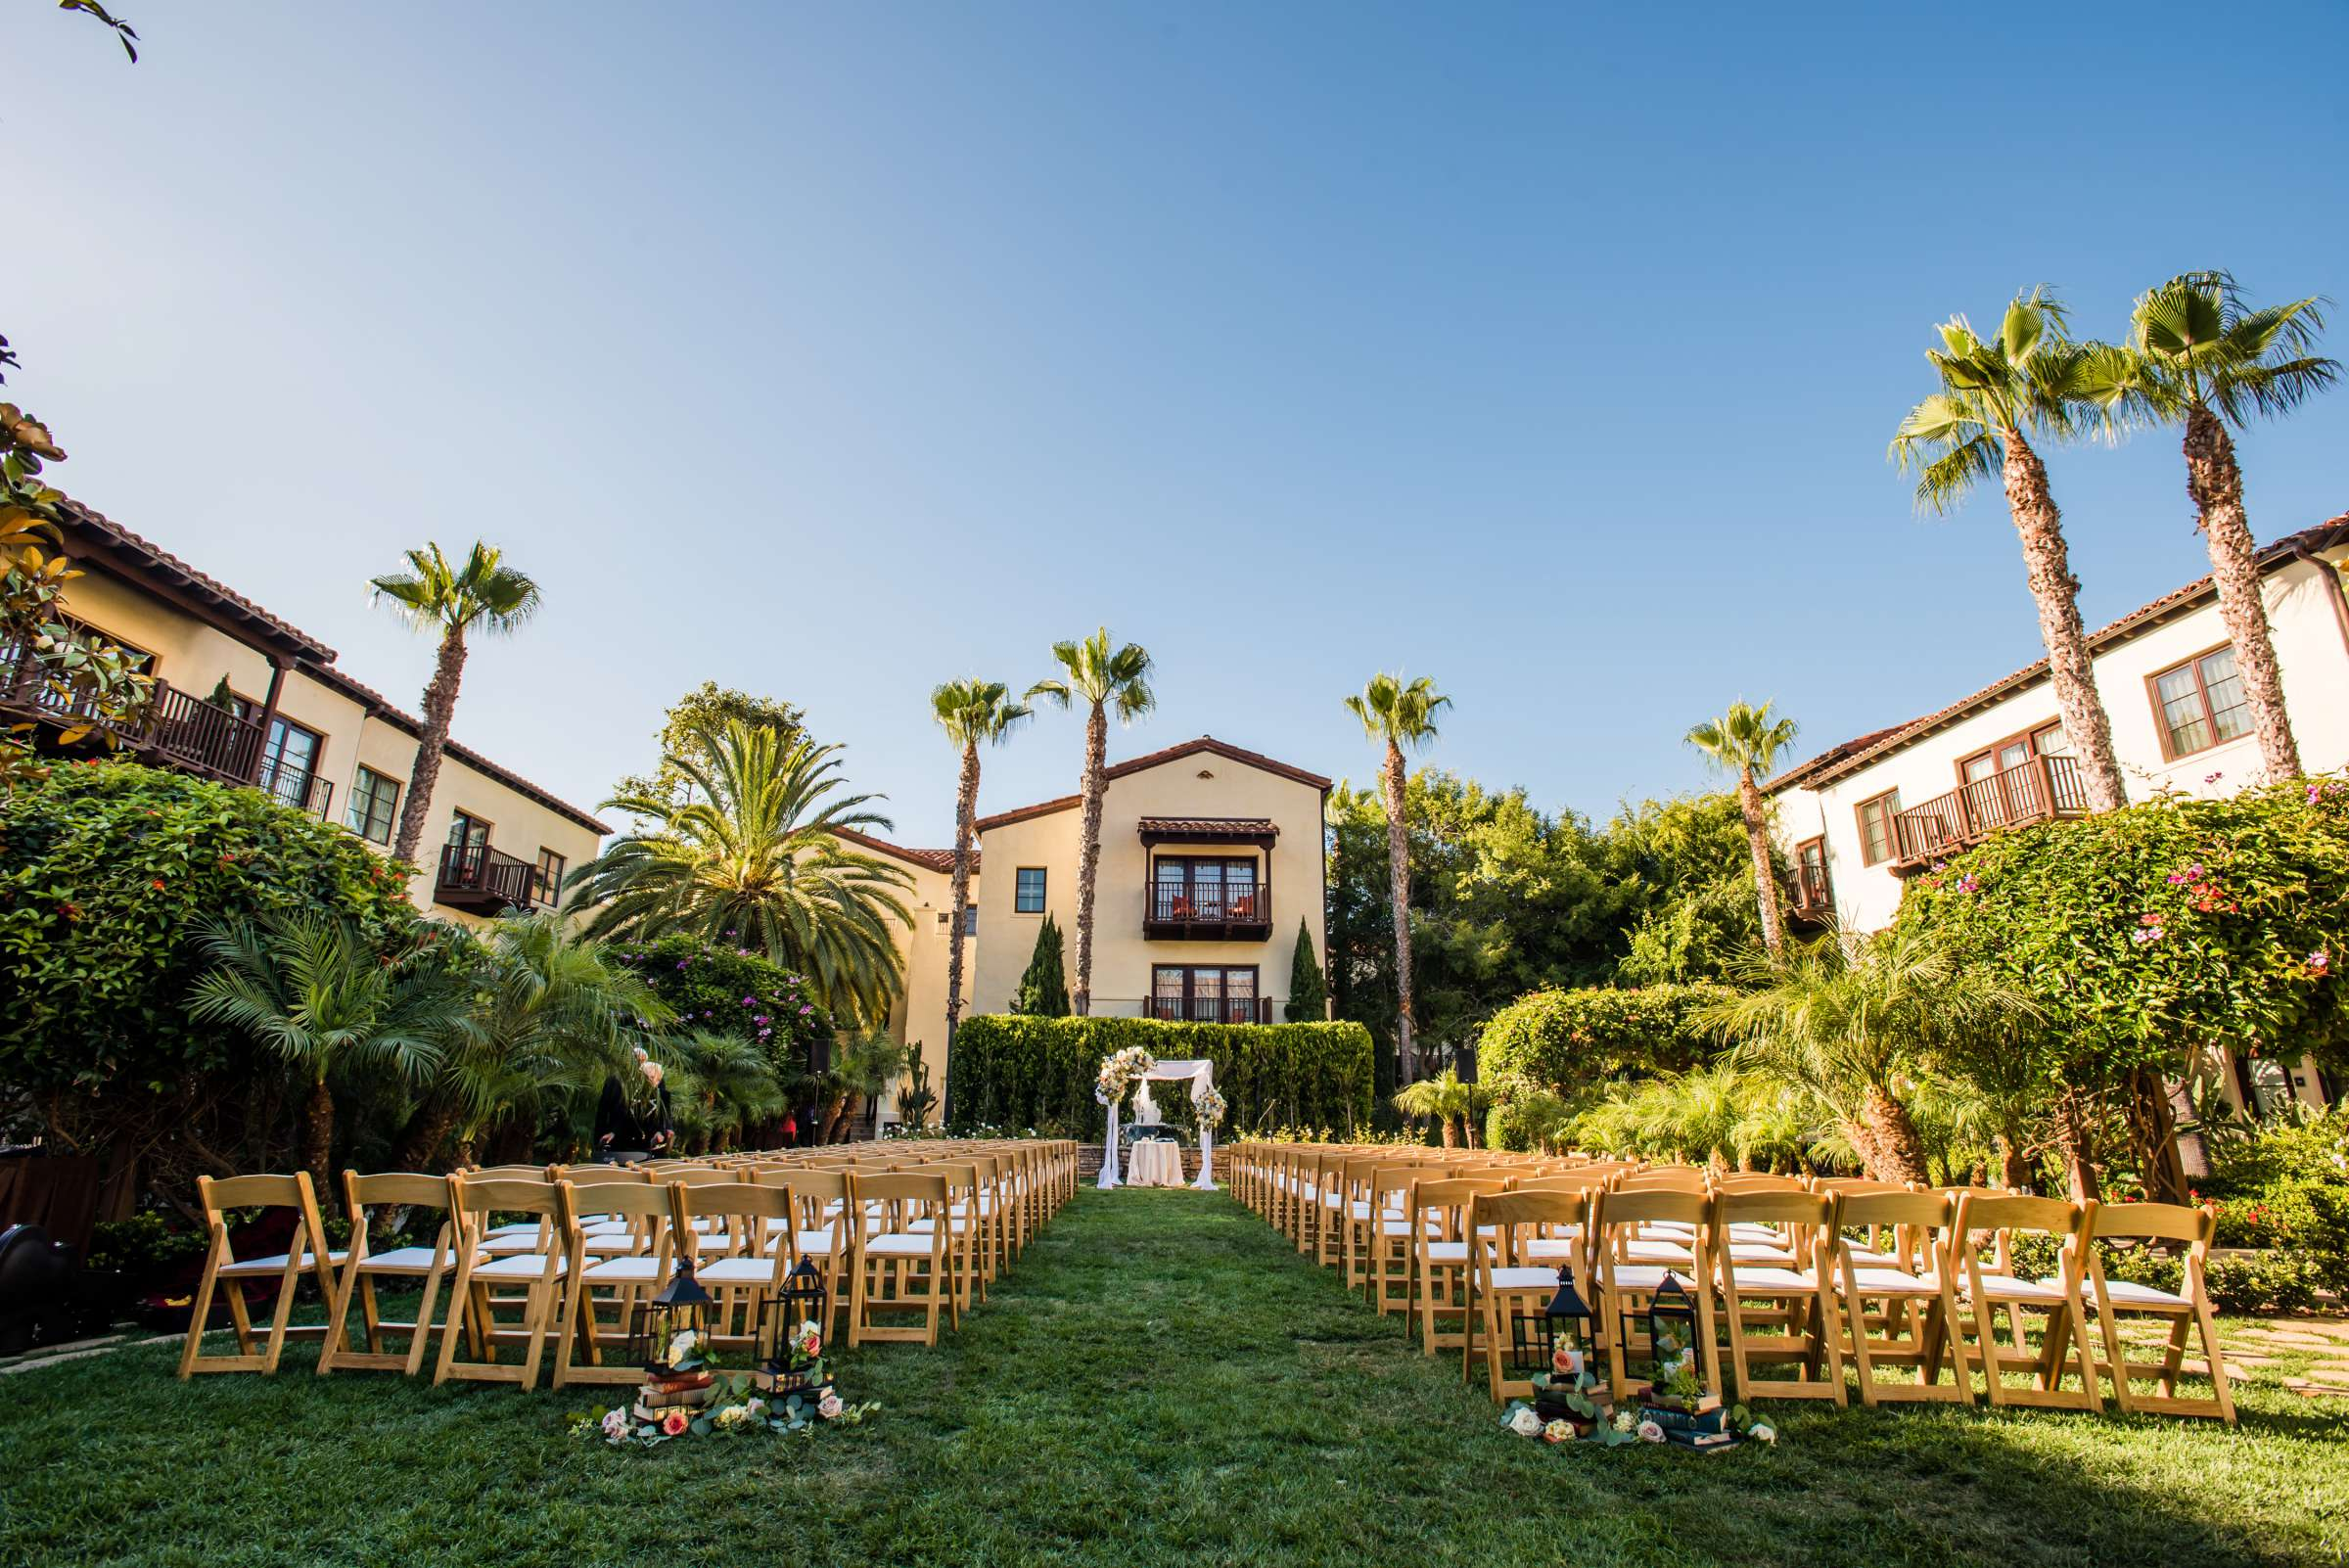 Estancia Wedding coordinated by Hannah Smith Events, Jaclyn and Brandon Wedding Photo #112 by True Photography